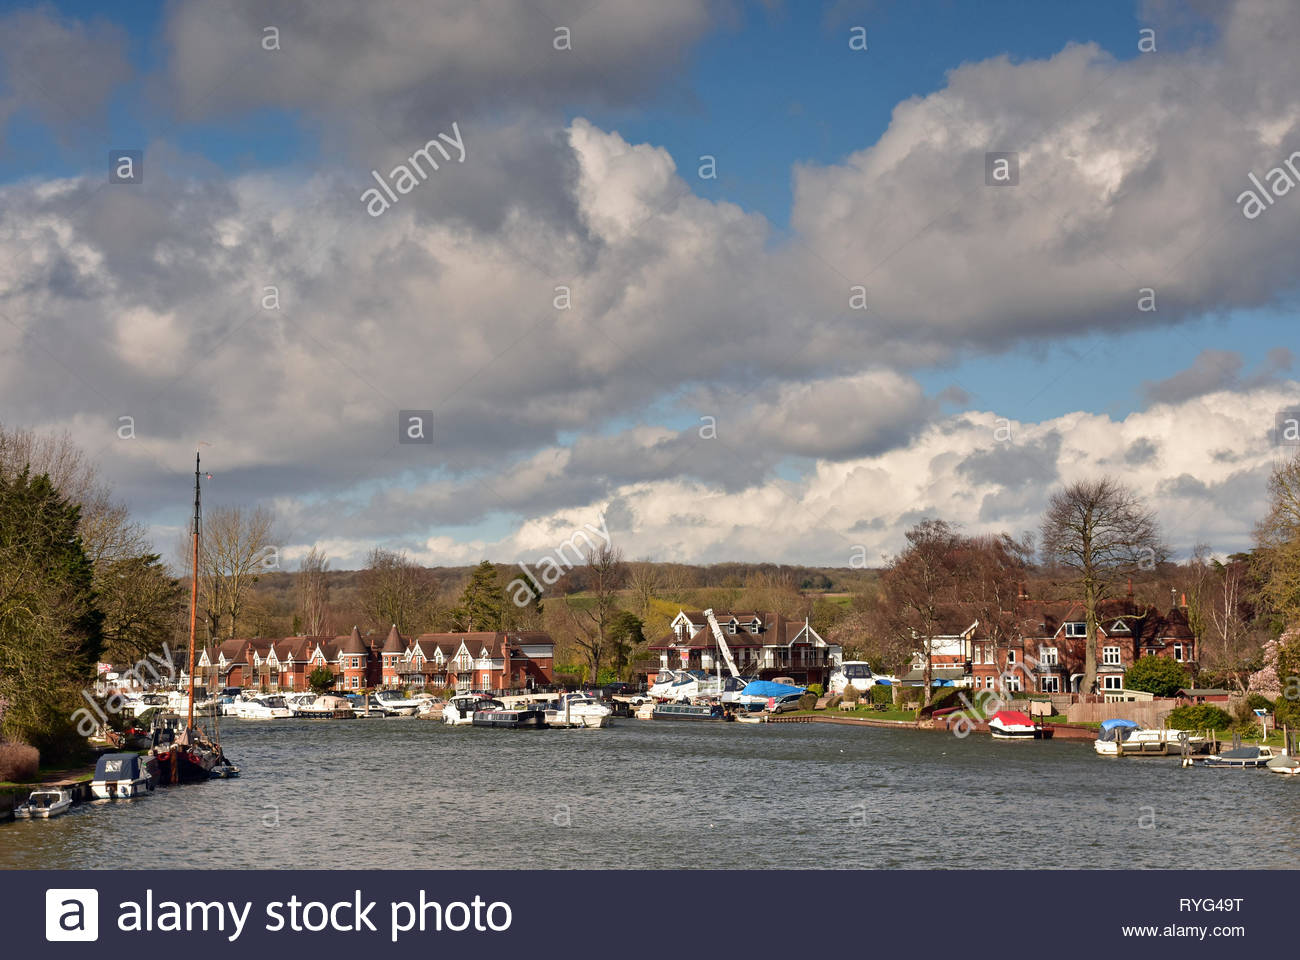 Village of Cookham from the River Thames, Berkshire, England - Stock Image